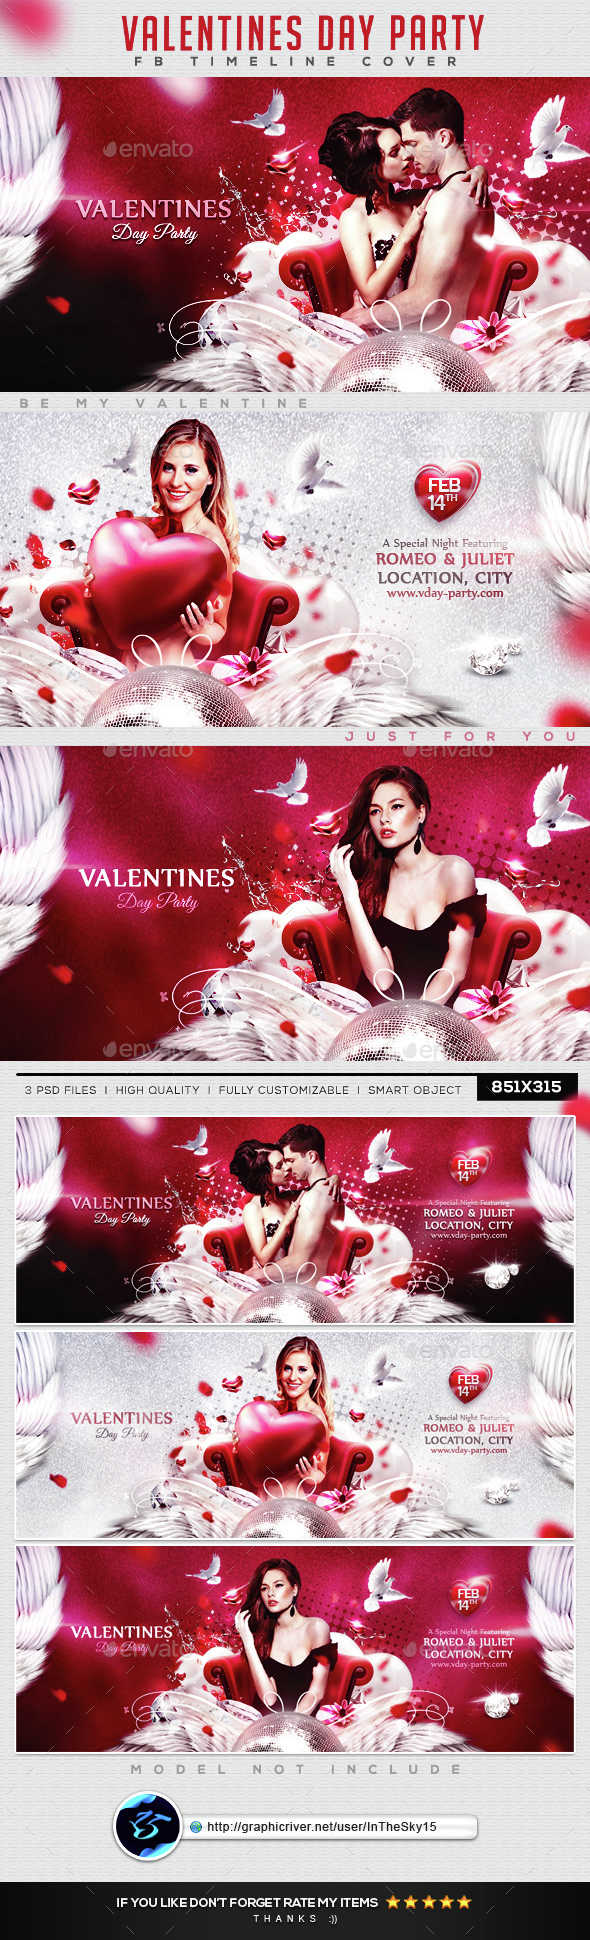 Valentines Day Party FB Timeline Cover - Facebook Timeline Covers Social Media